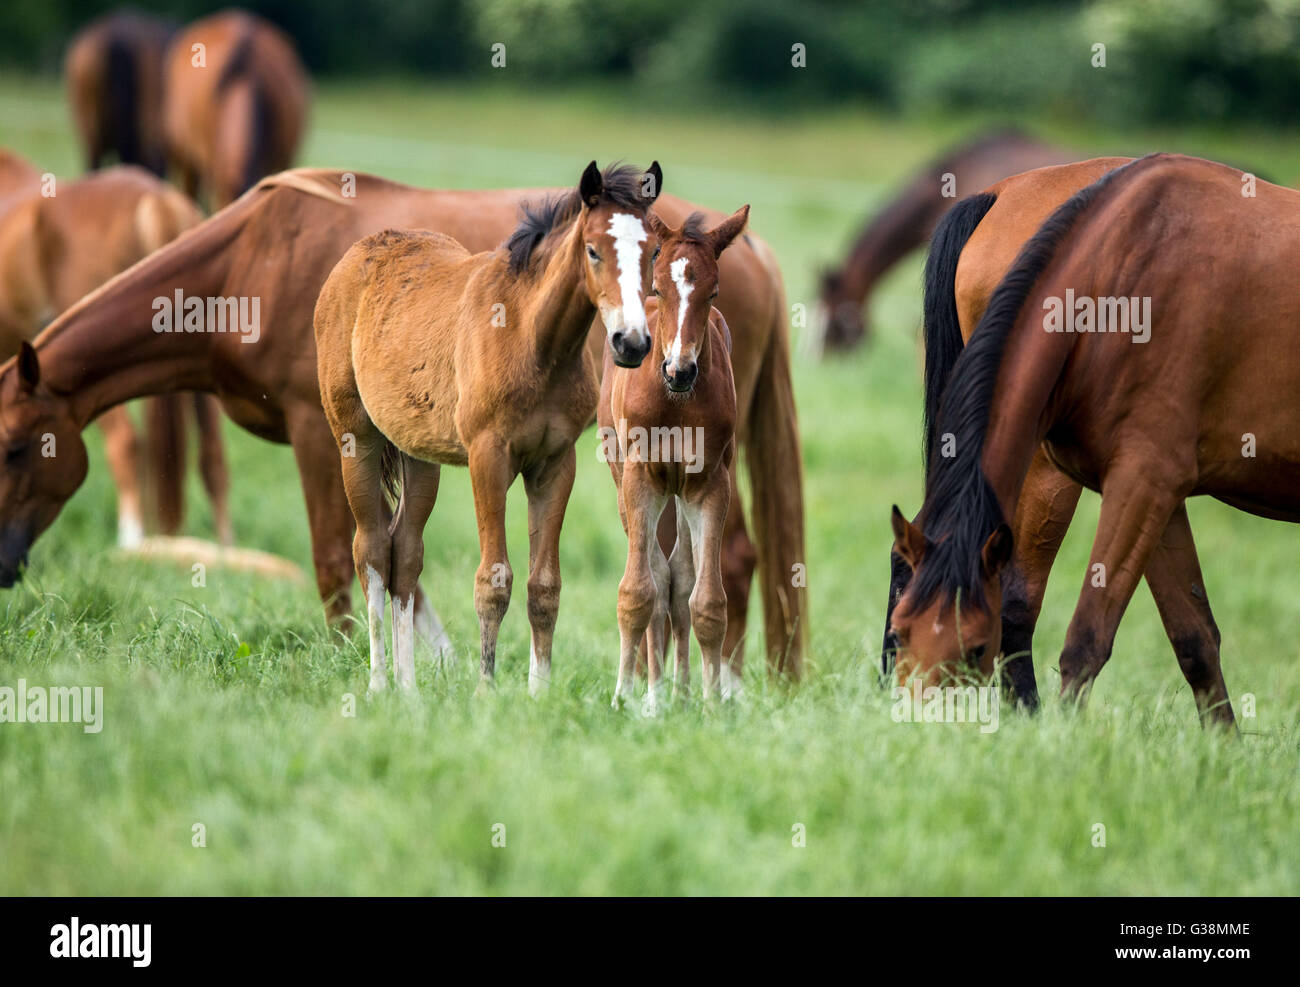 Ganschow, Germany. 9th June, 2016. Young foals stand in the paddocks at the stud Ganschow in Germany, 9 June 2016. - Stock Image